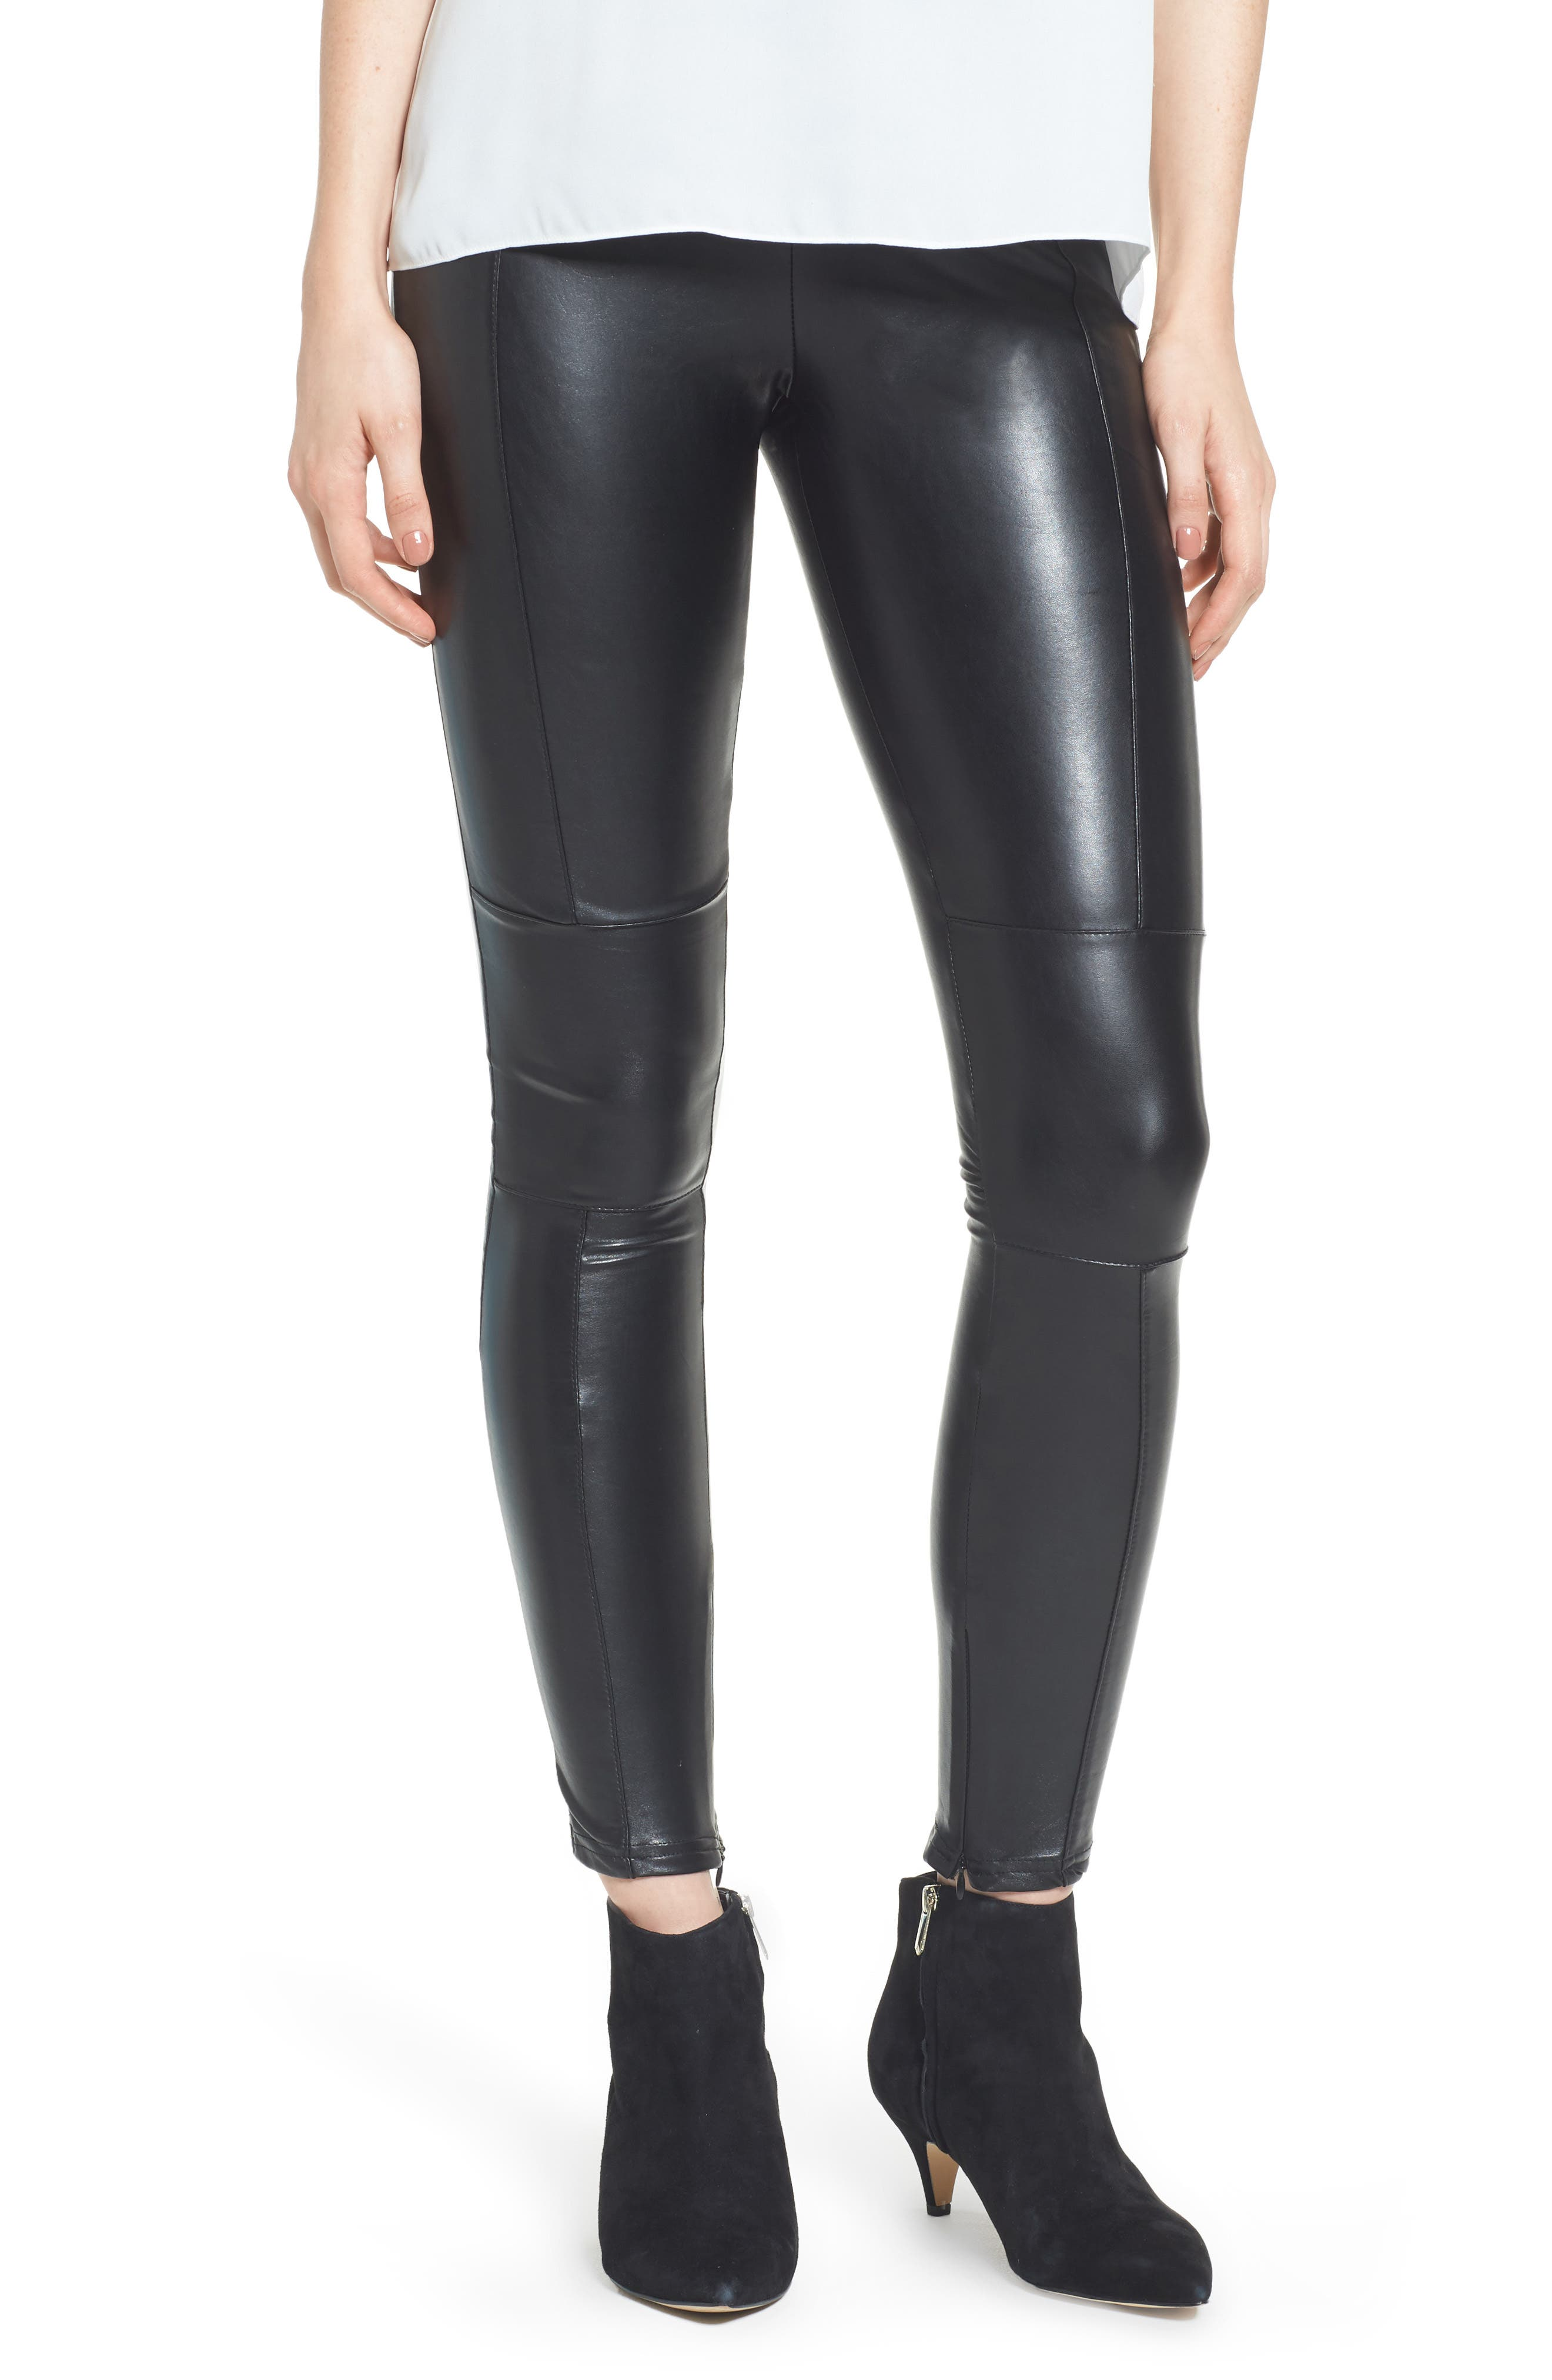 Bishop + Young Faux Leather Ankle Leggings,                             Main thumbnail 1, color,                             Black